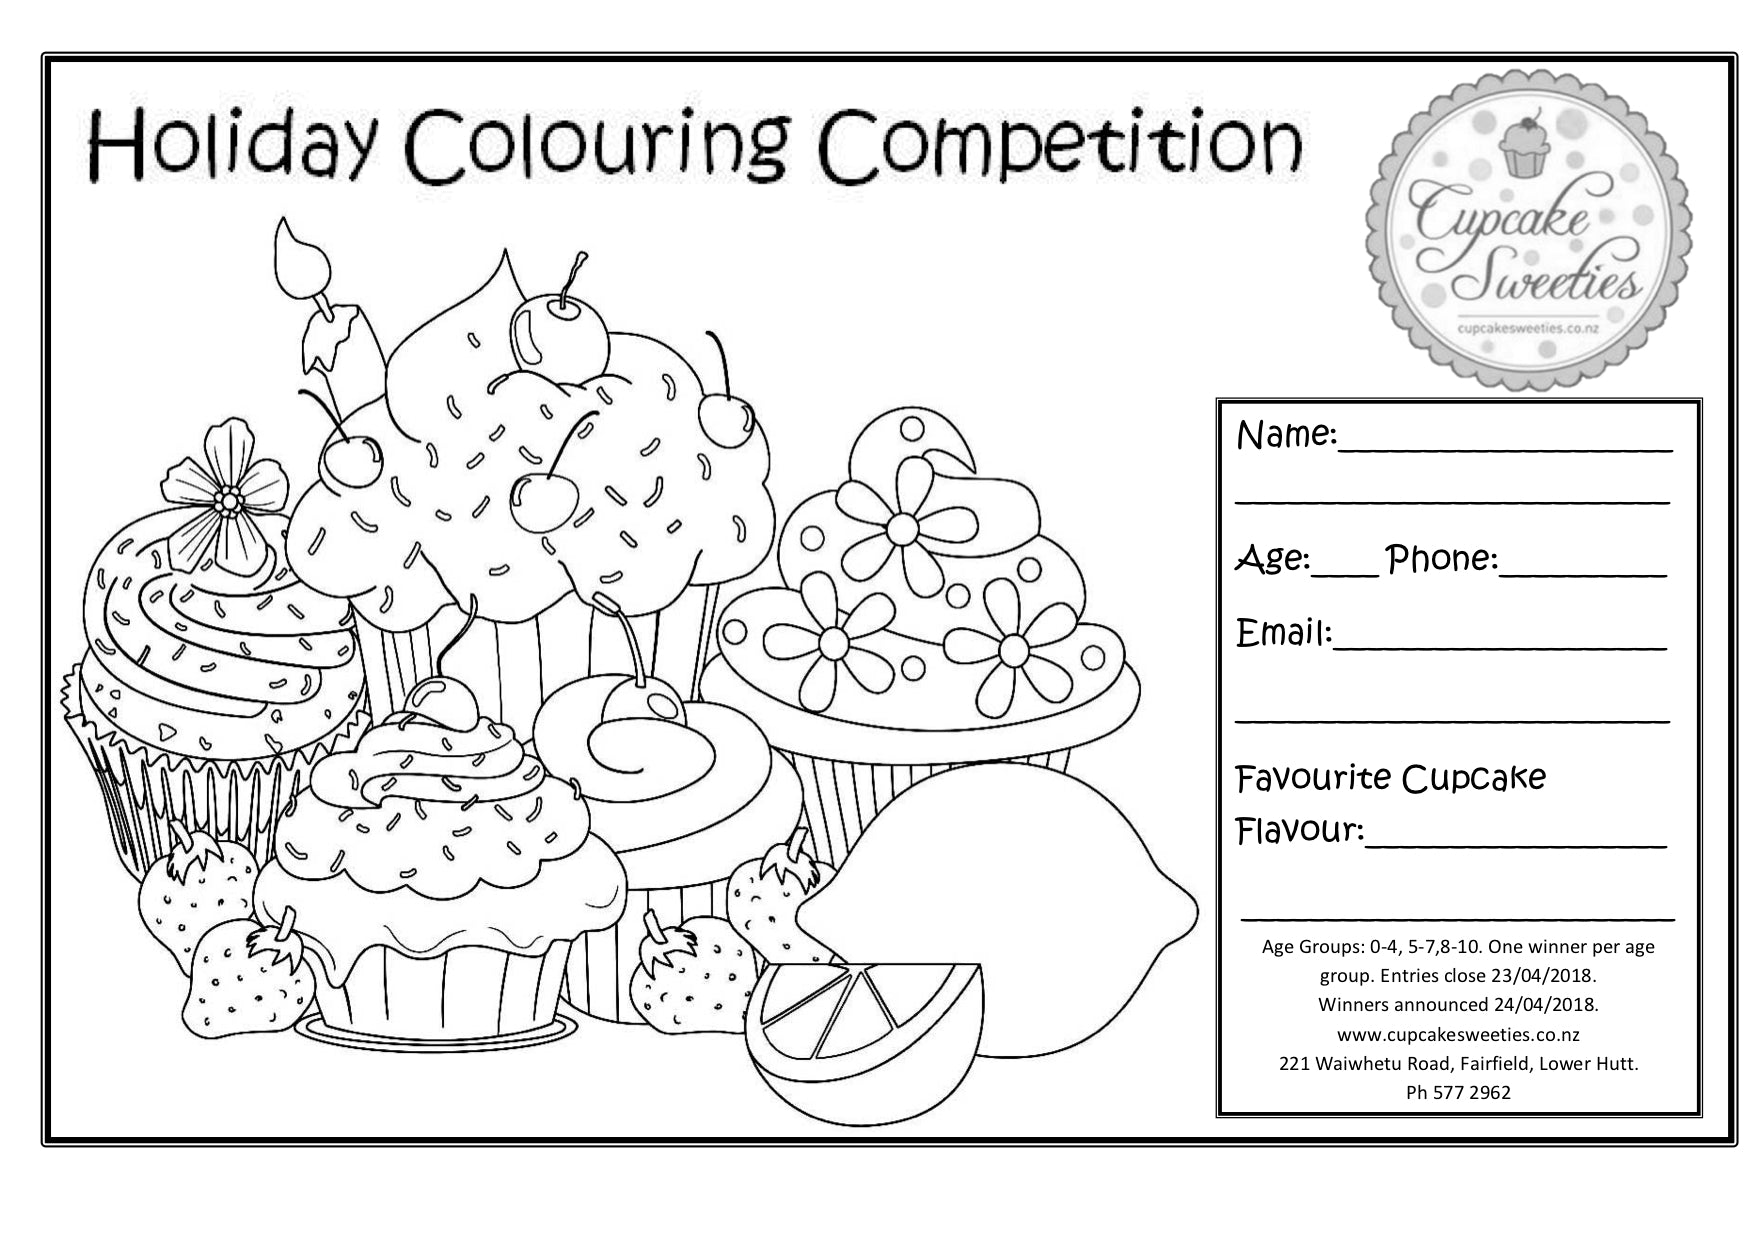 Cupcake Sweeties colouring competition entry form